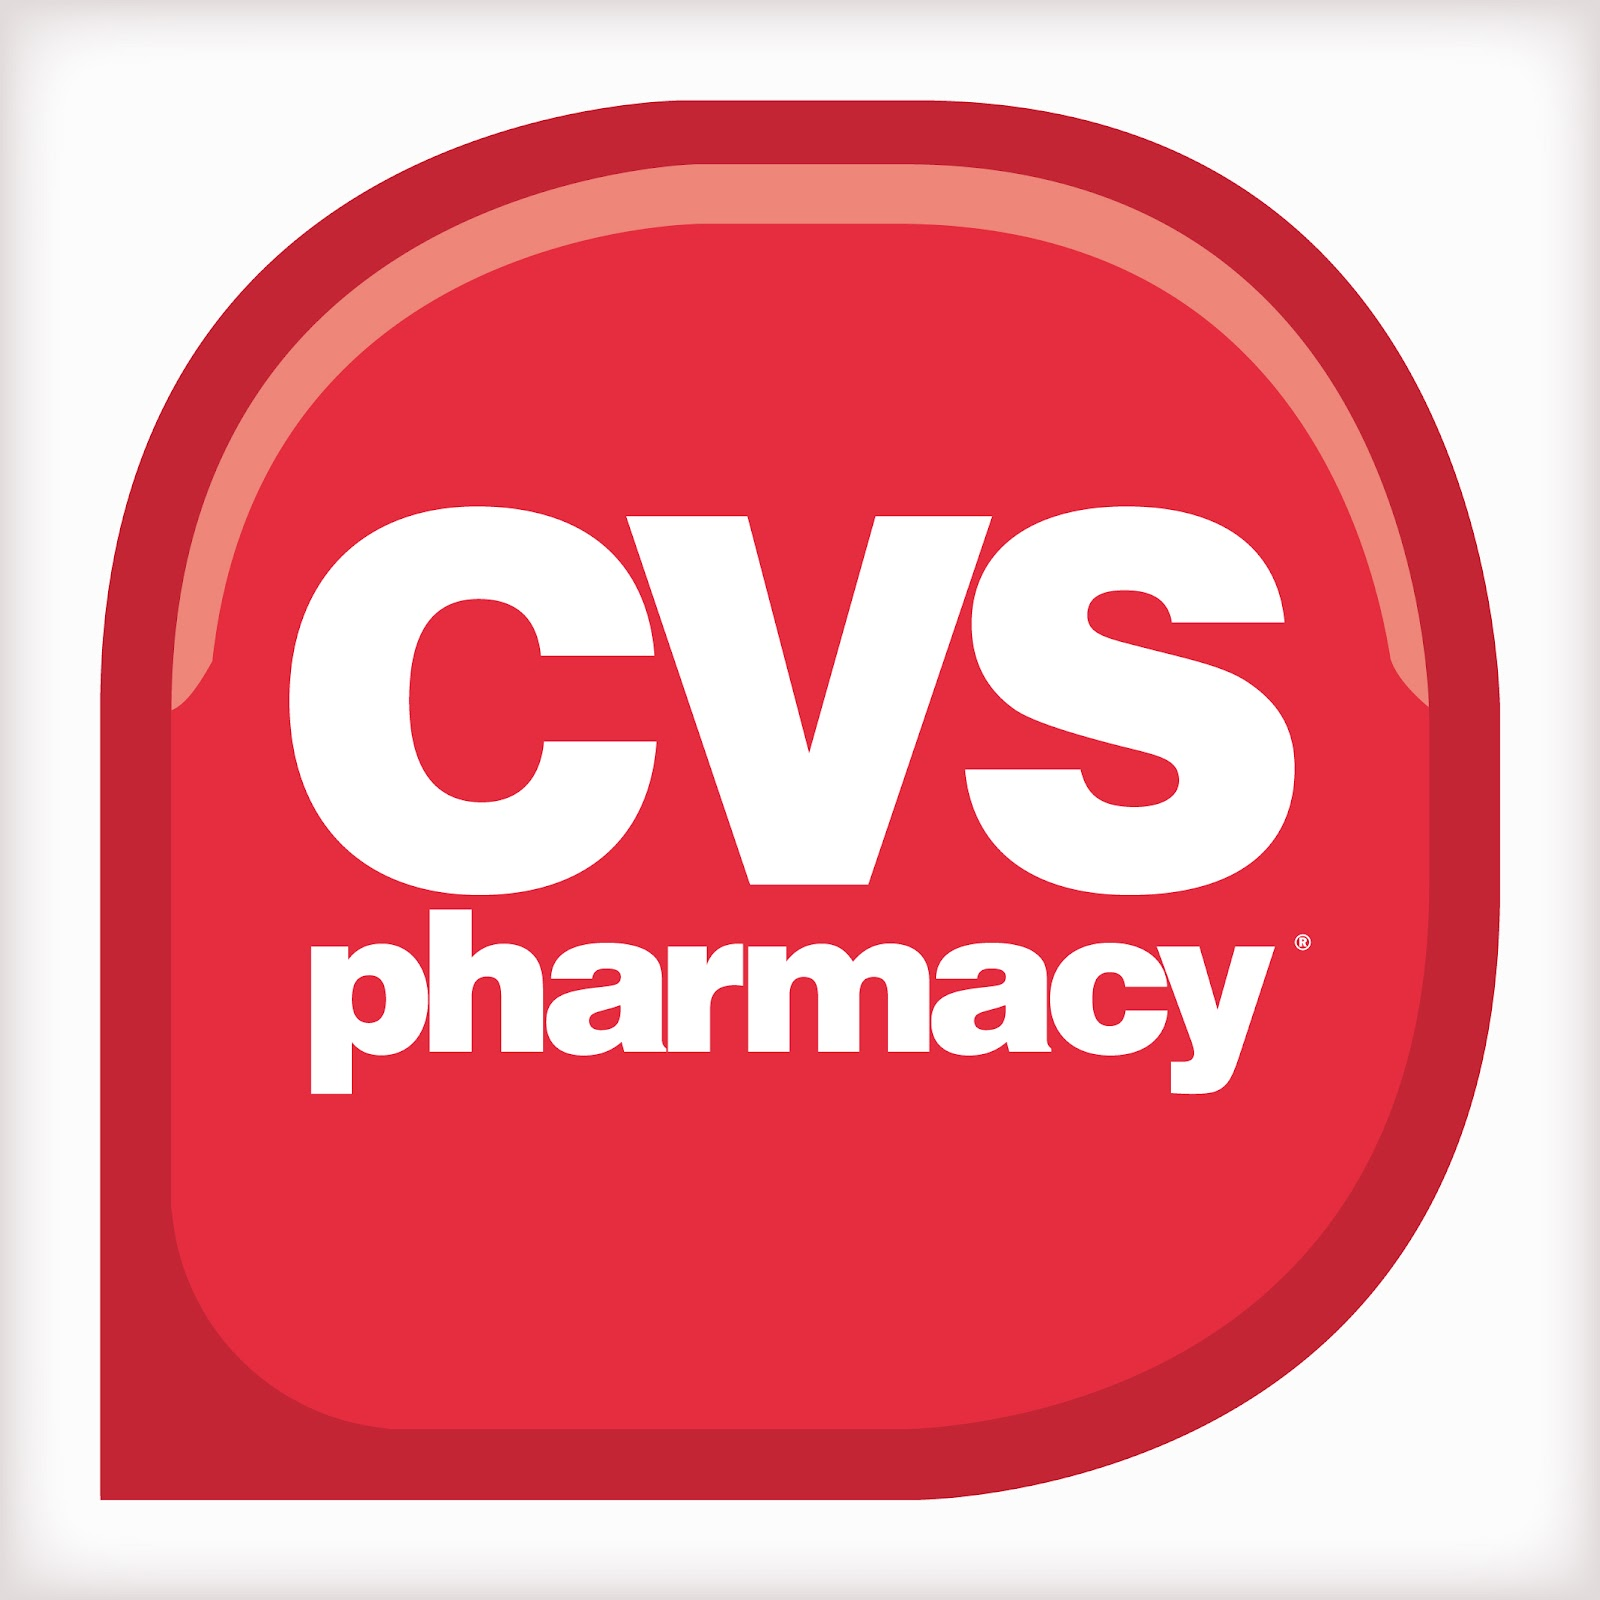 Does cvs accept coupons for free items